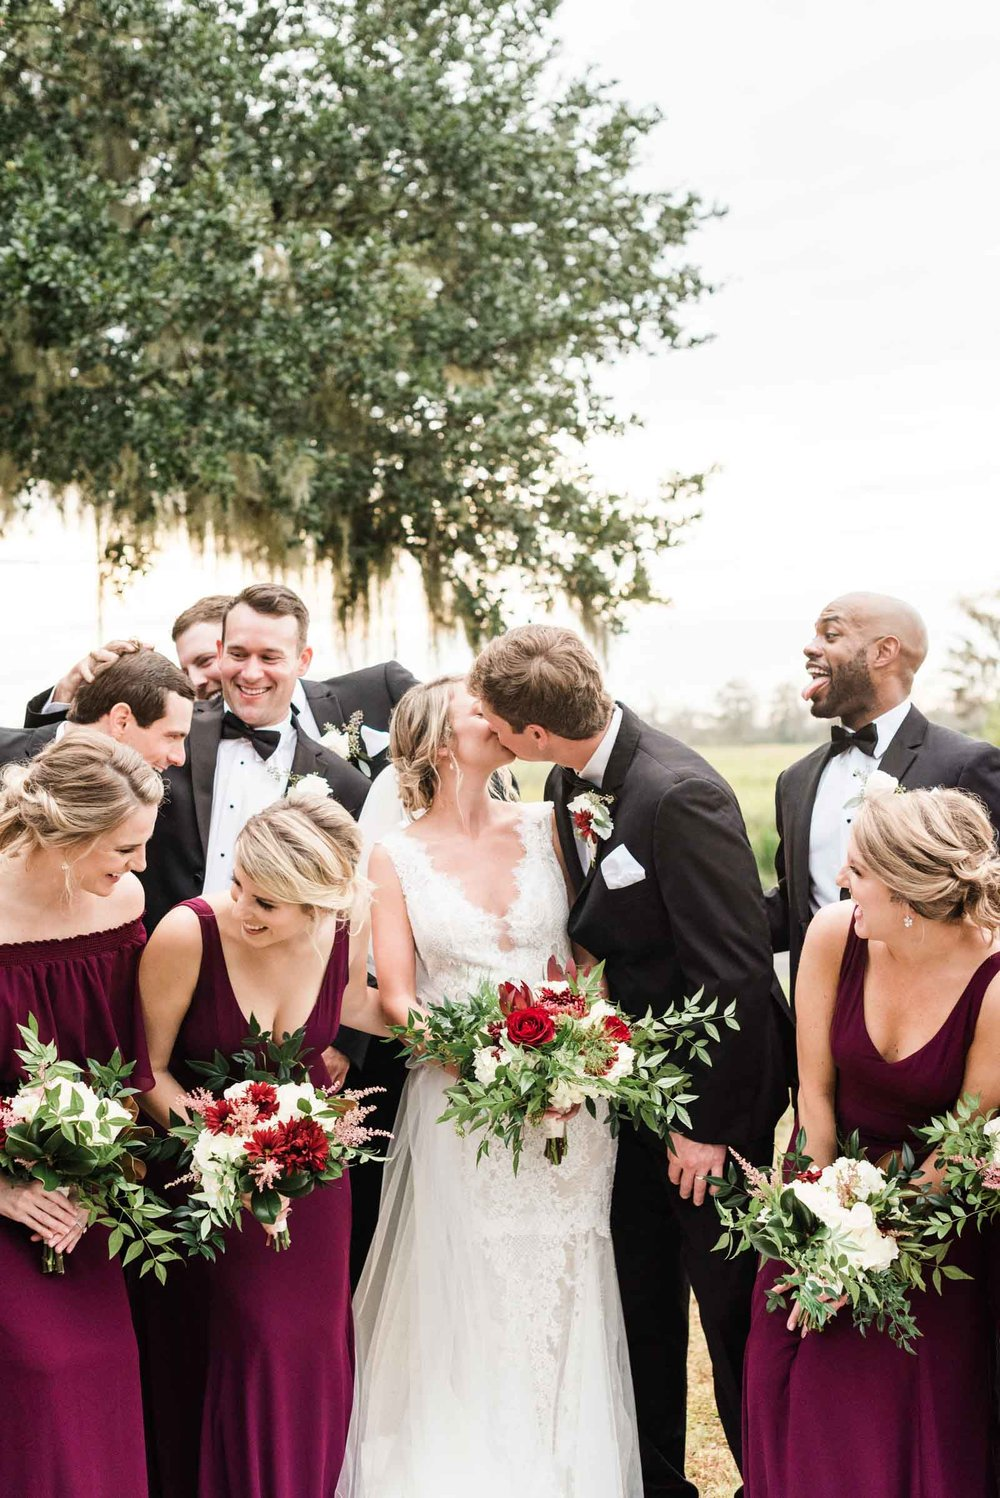 Wedding at Heritage Plantation in Pawley's Island_Markie Walden Photo-46.jpg